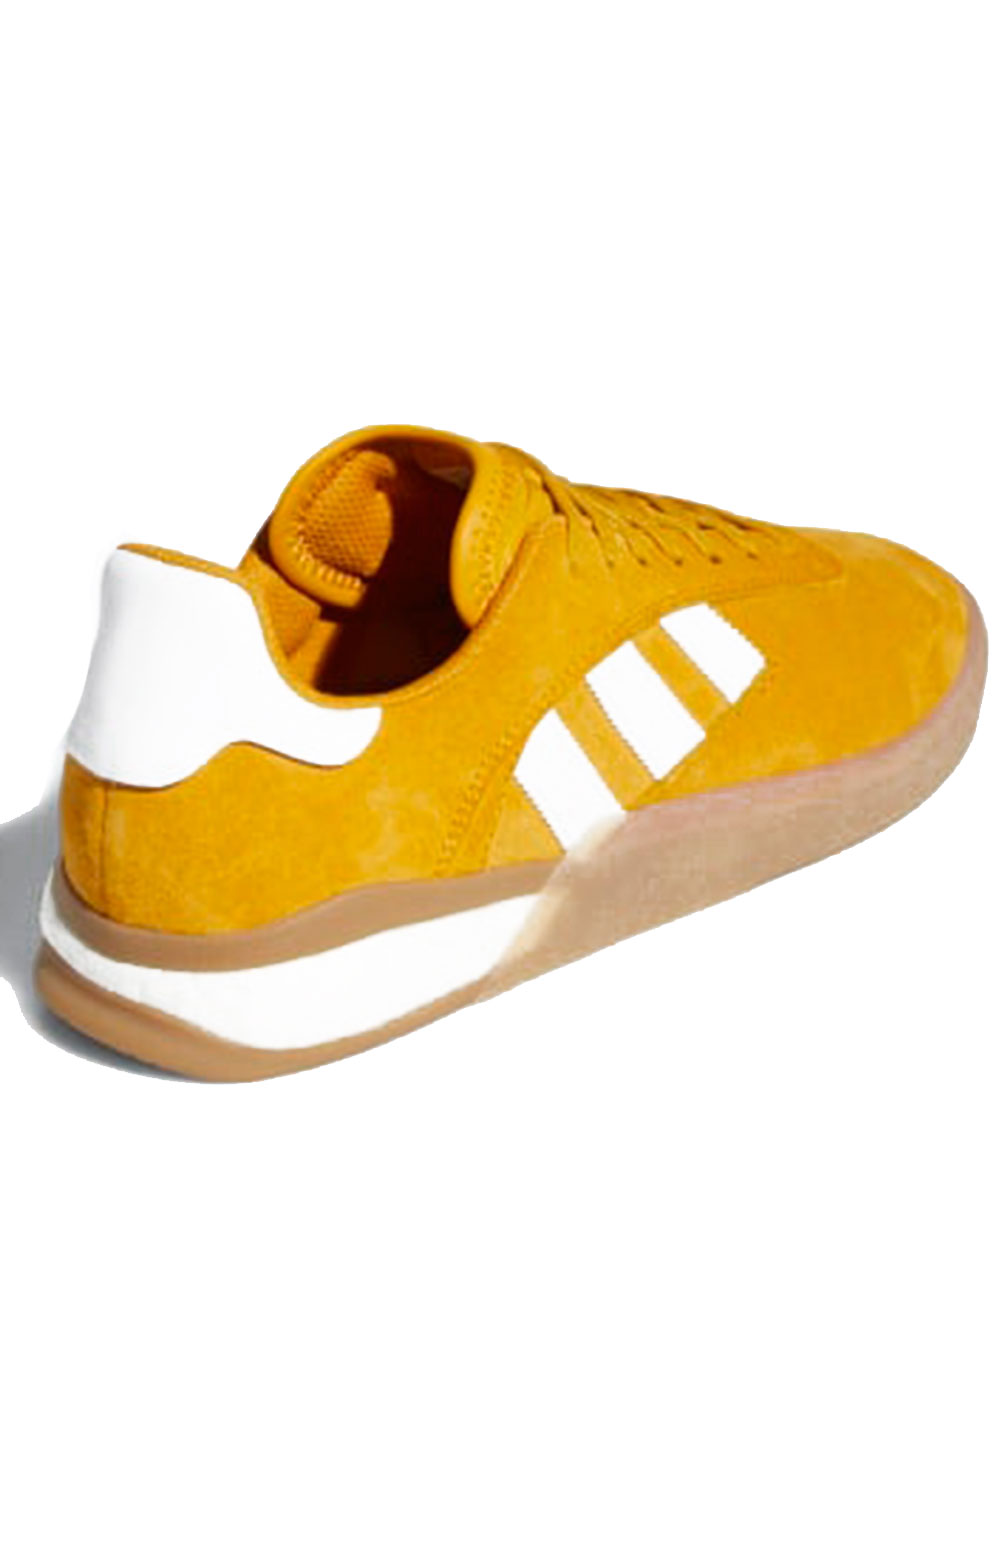 (EE7669) 3ST.004 Shoes - Yellow 4